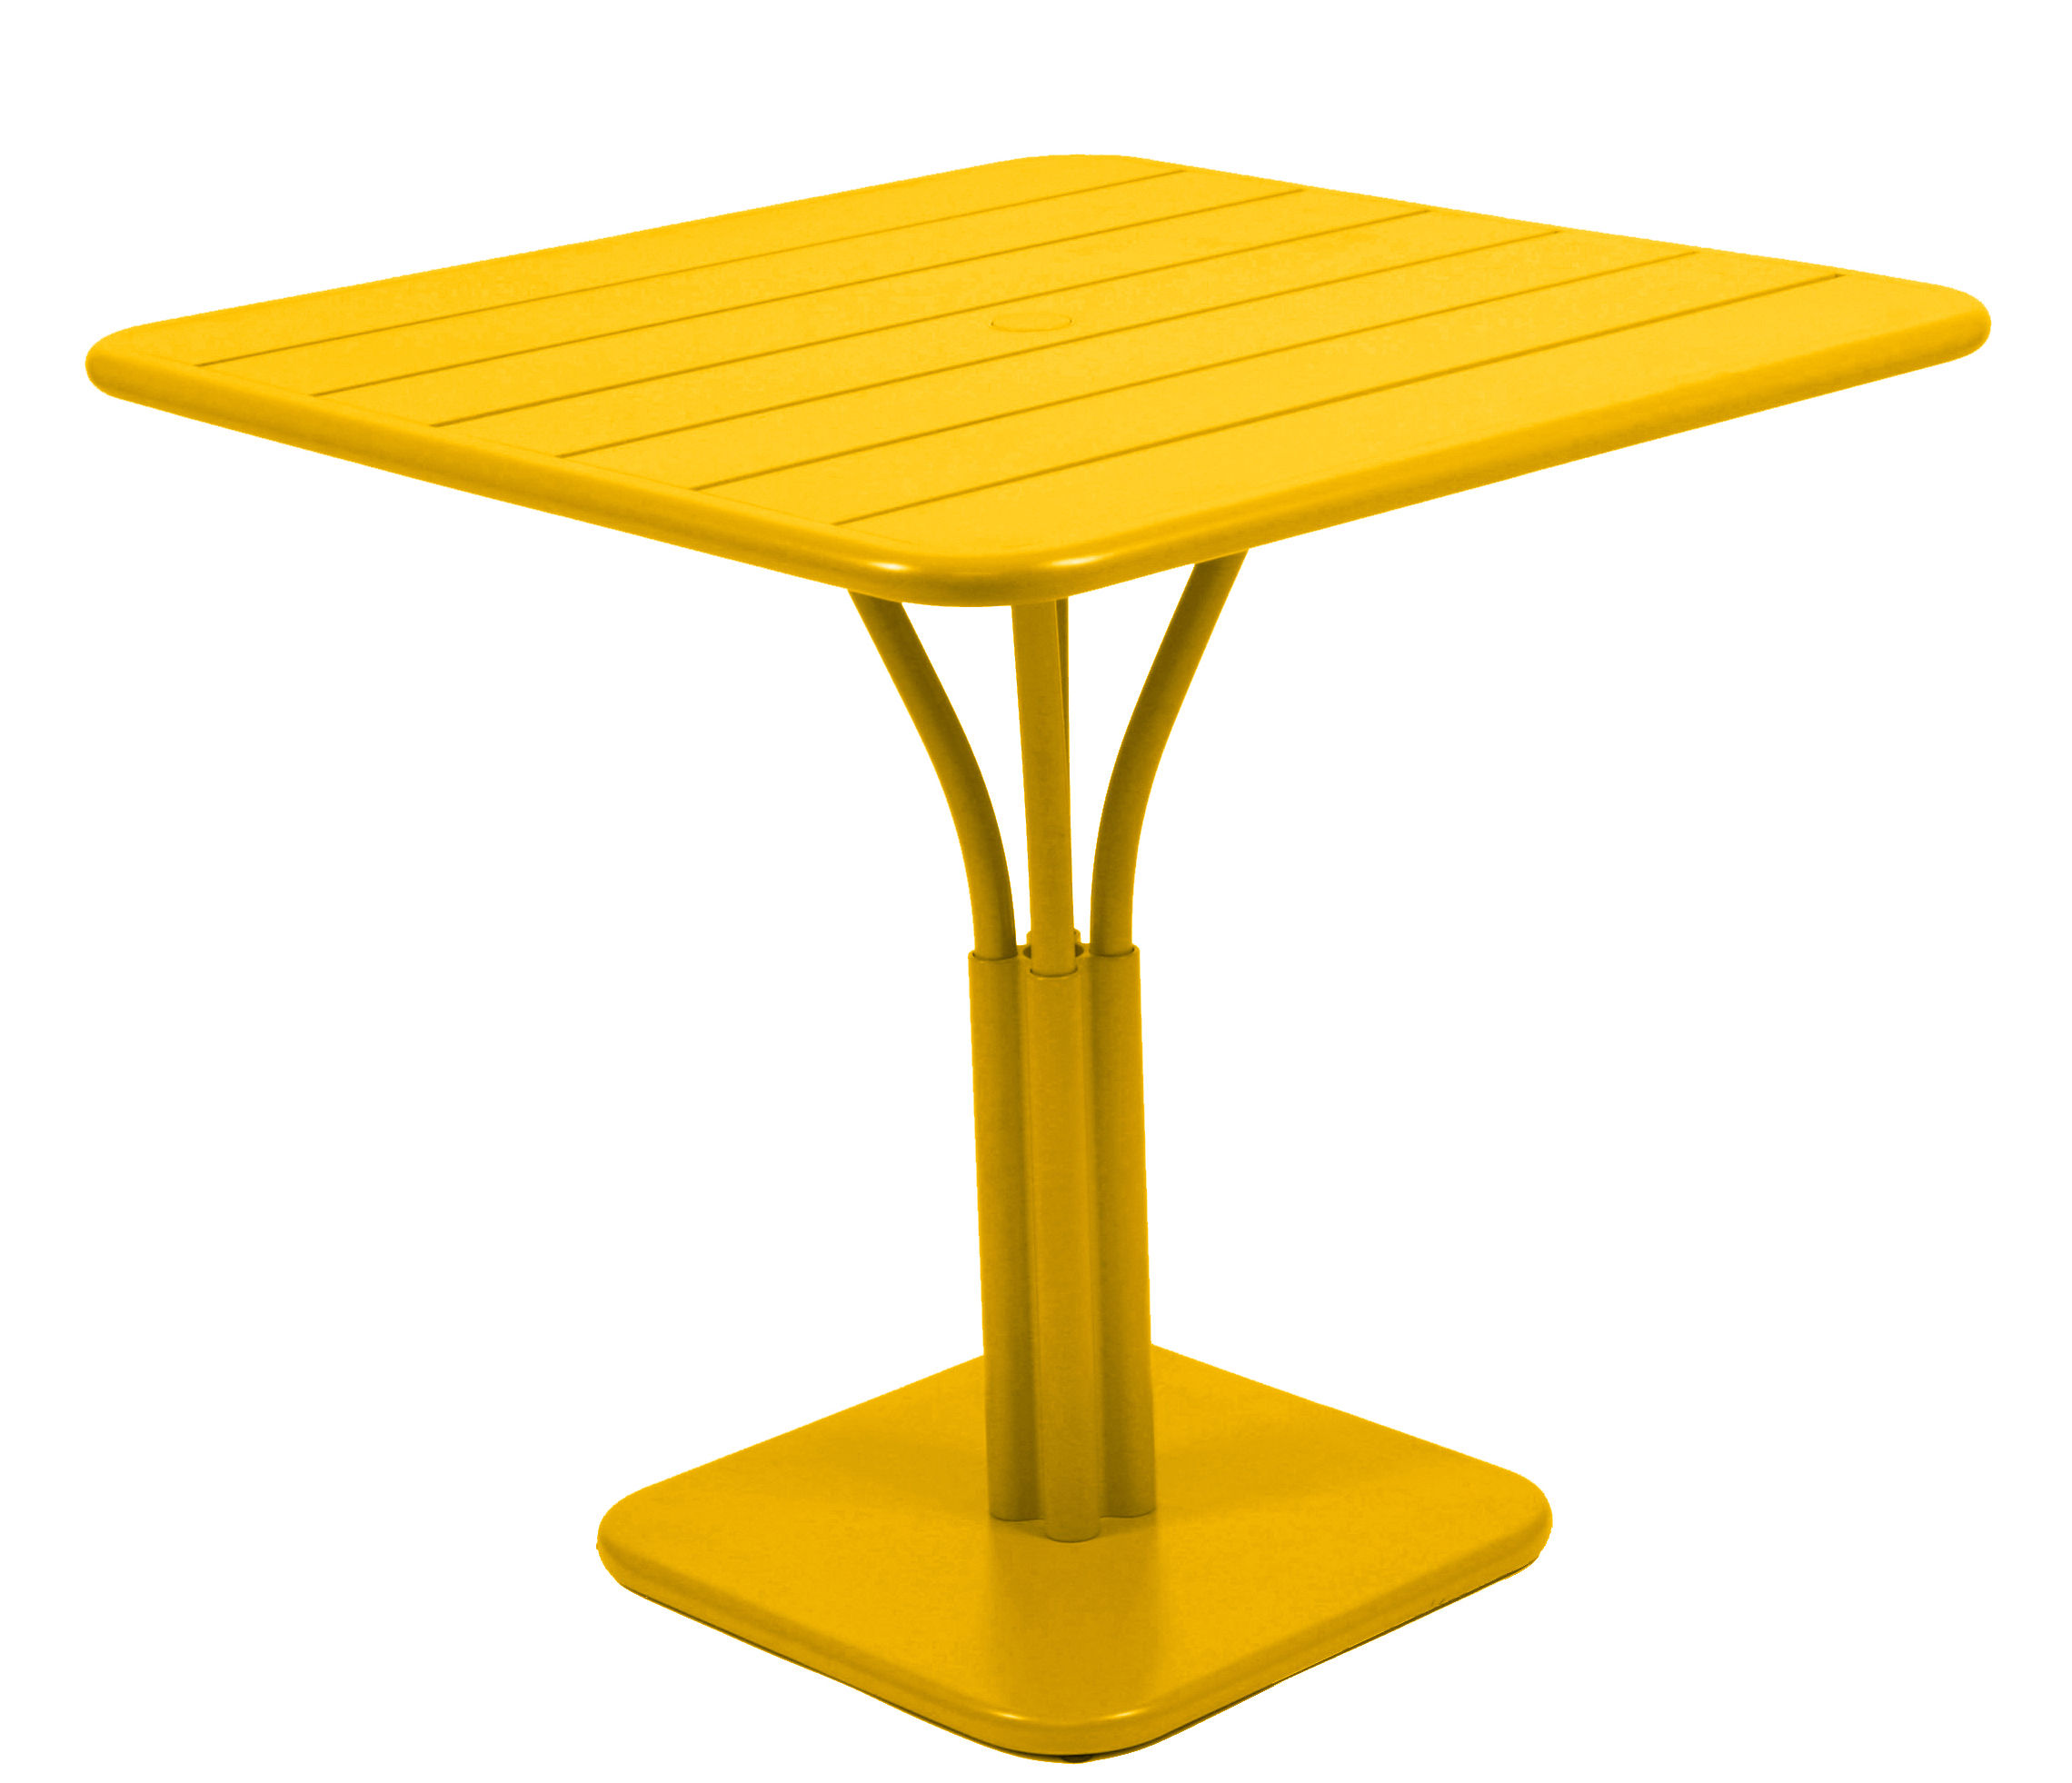 Outdoor - Garden Tables - Luxembourg Square table by Fermob - Honey - Lacquered aluminium